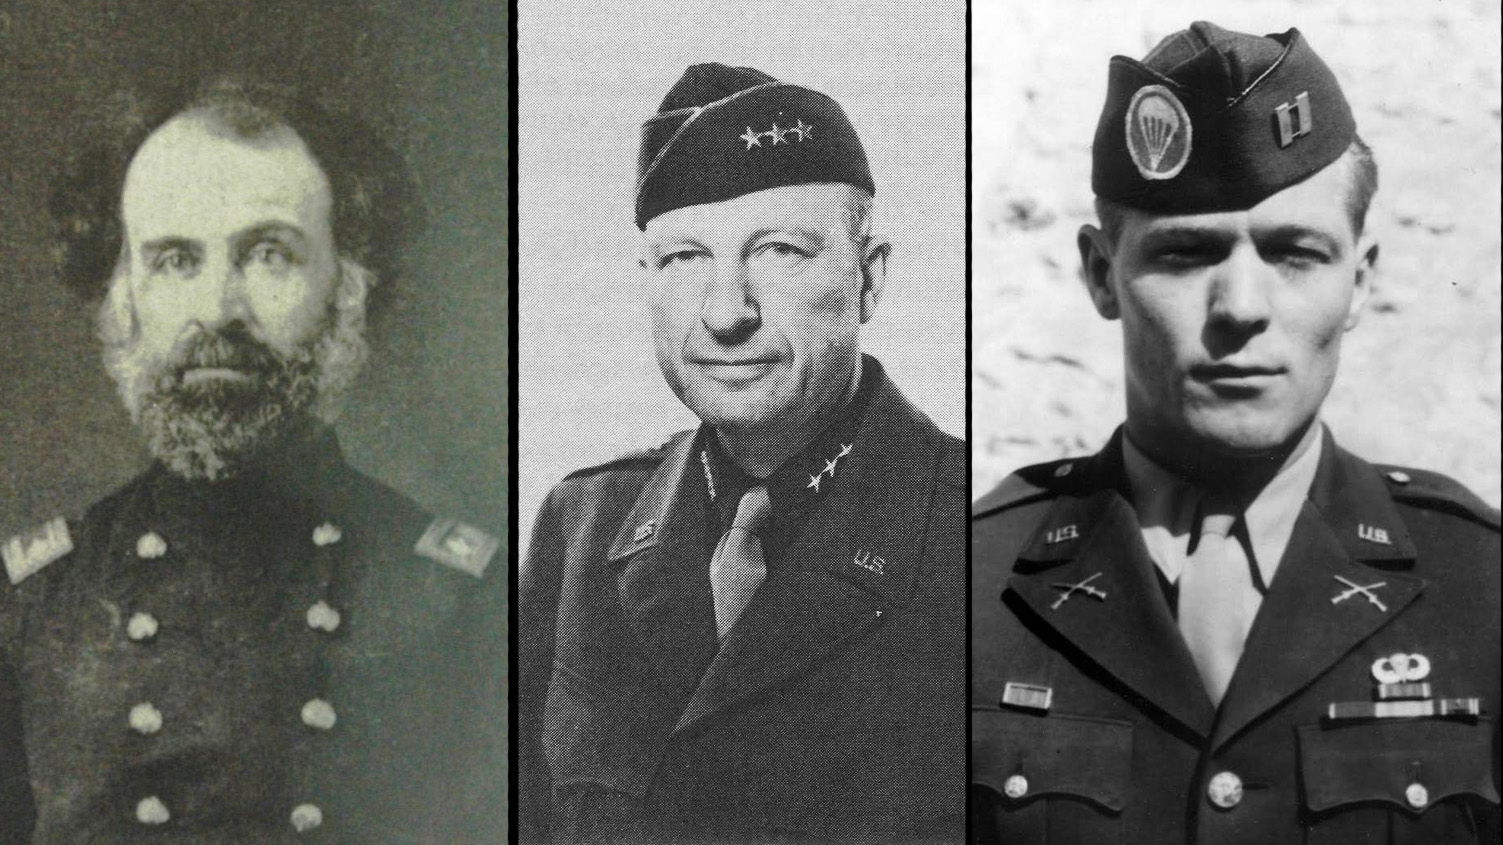 Remembering a few historic veterans that made Lebanon County proud